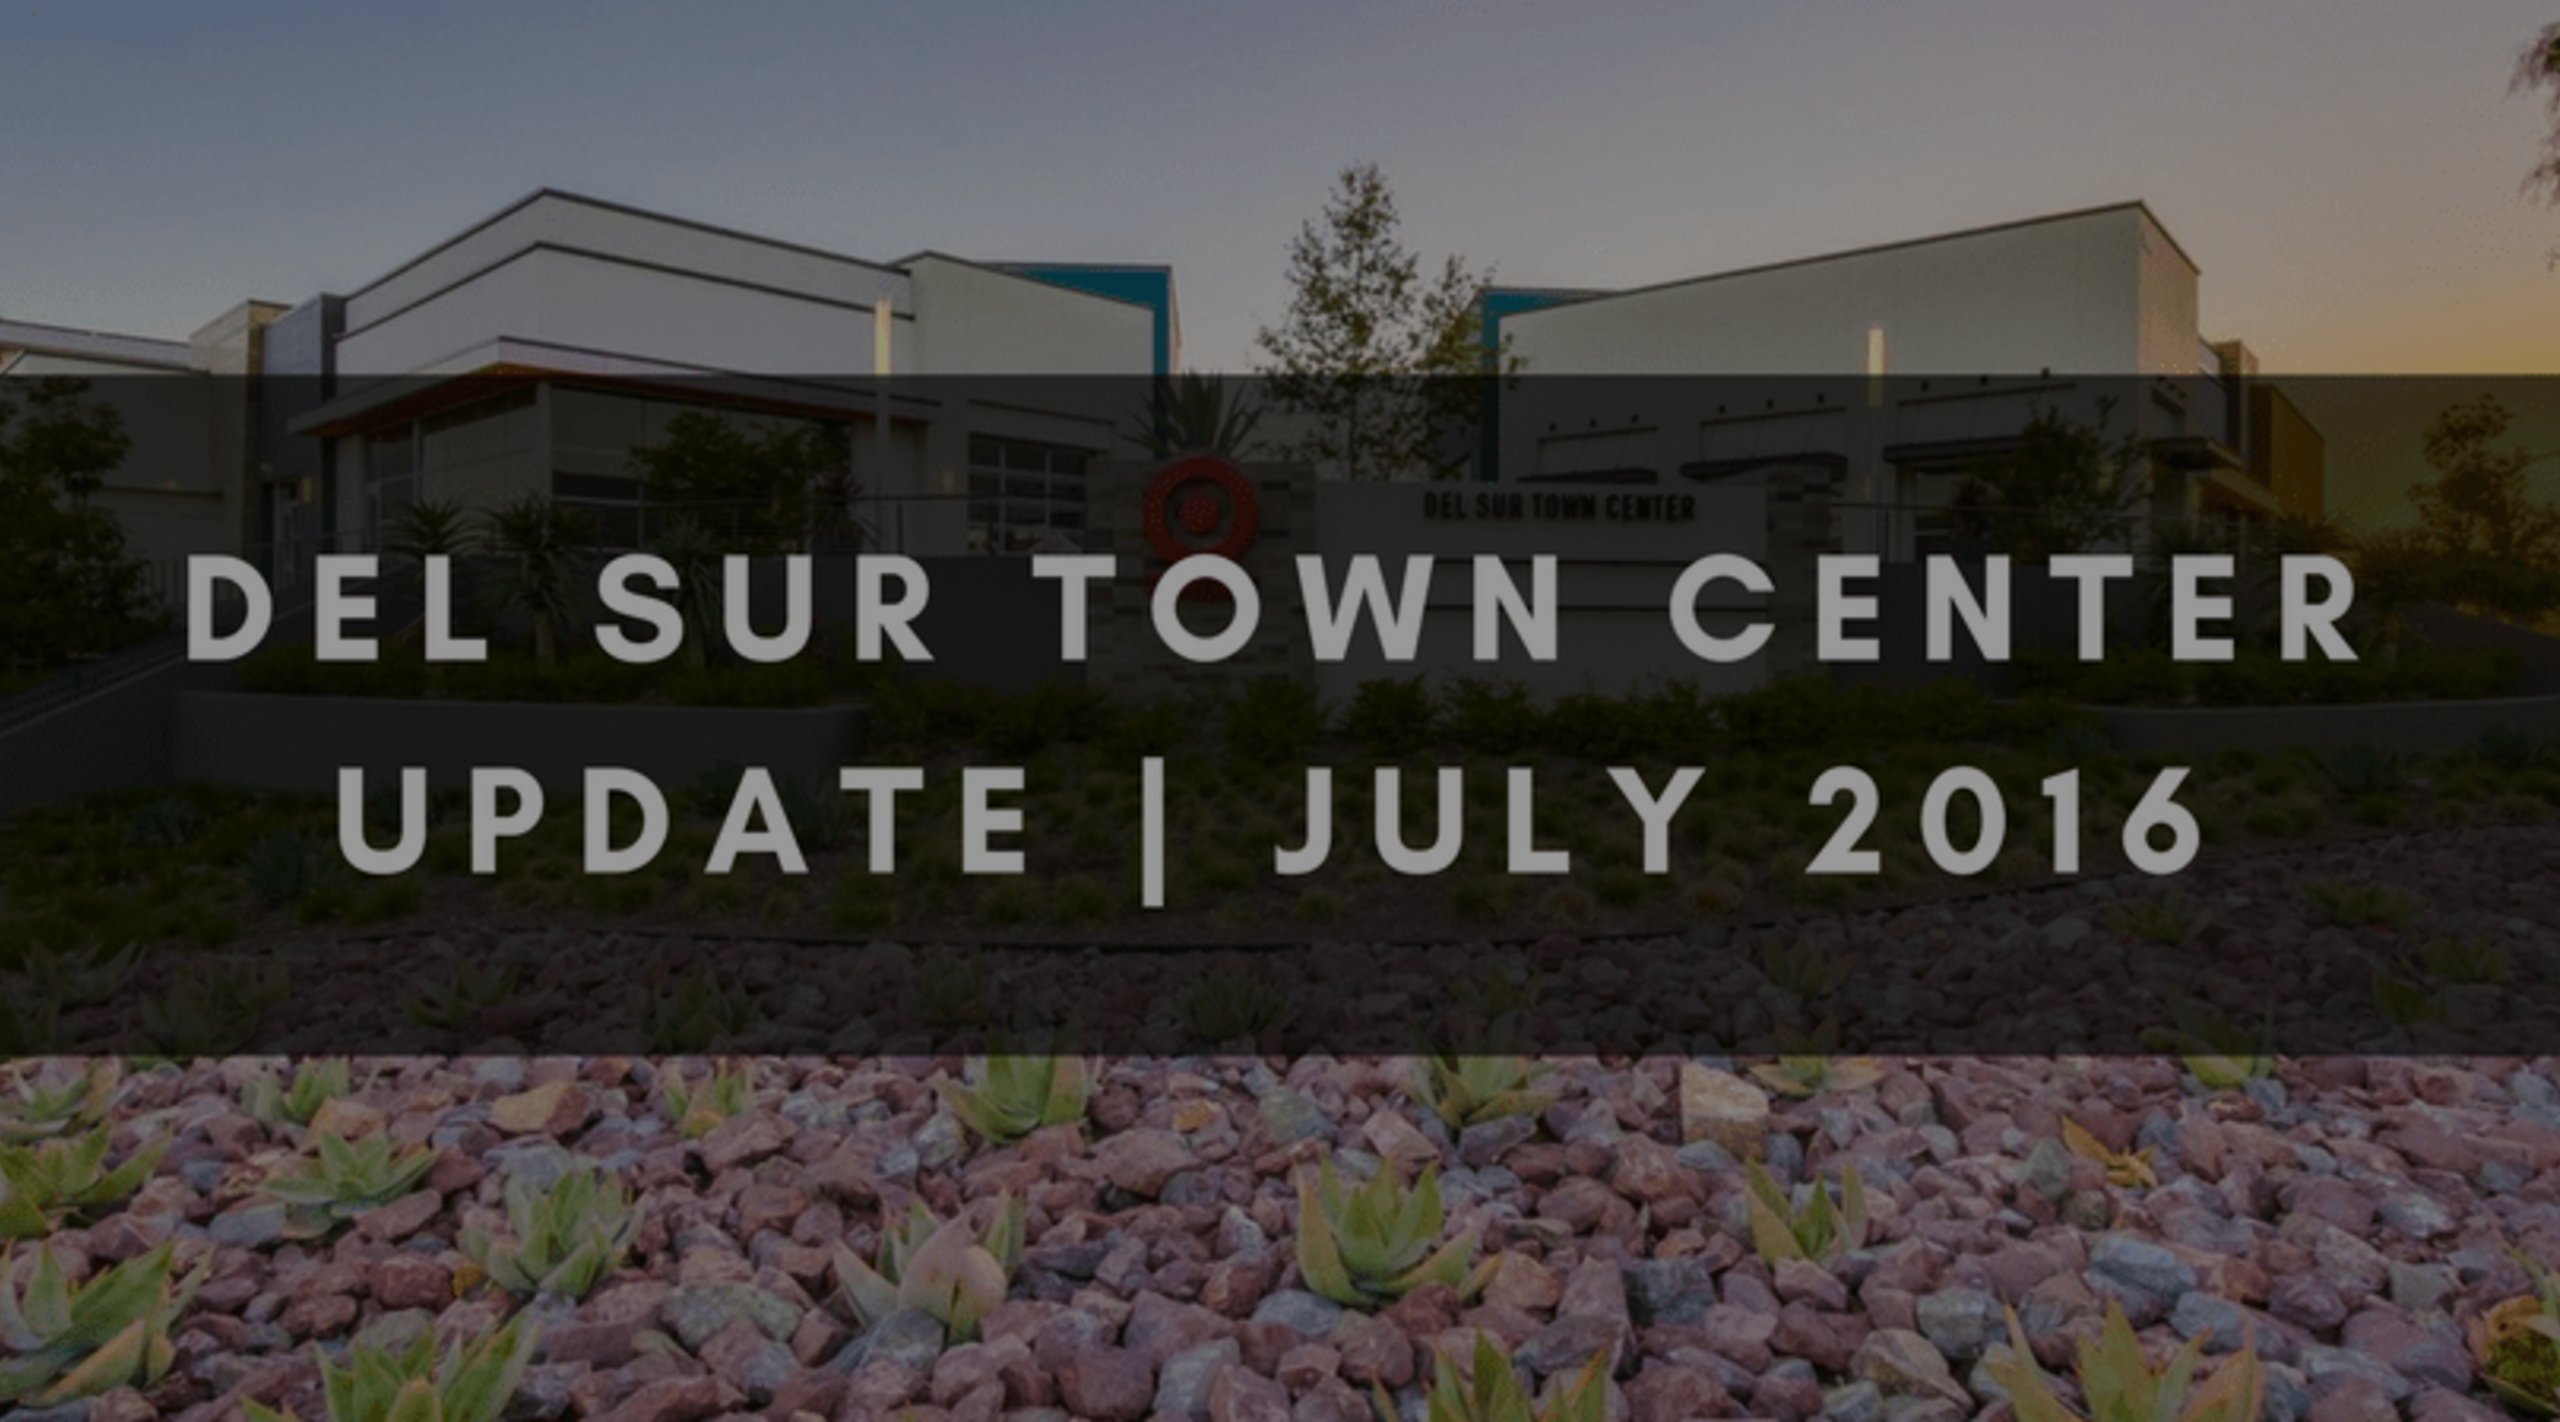 DEL SUR TOWN CENTER UPDATE | JULY 2016